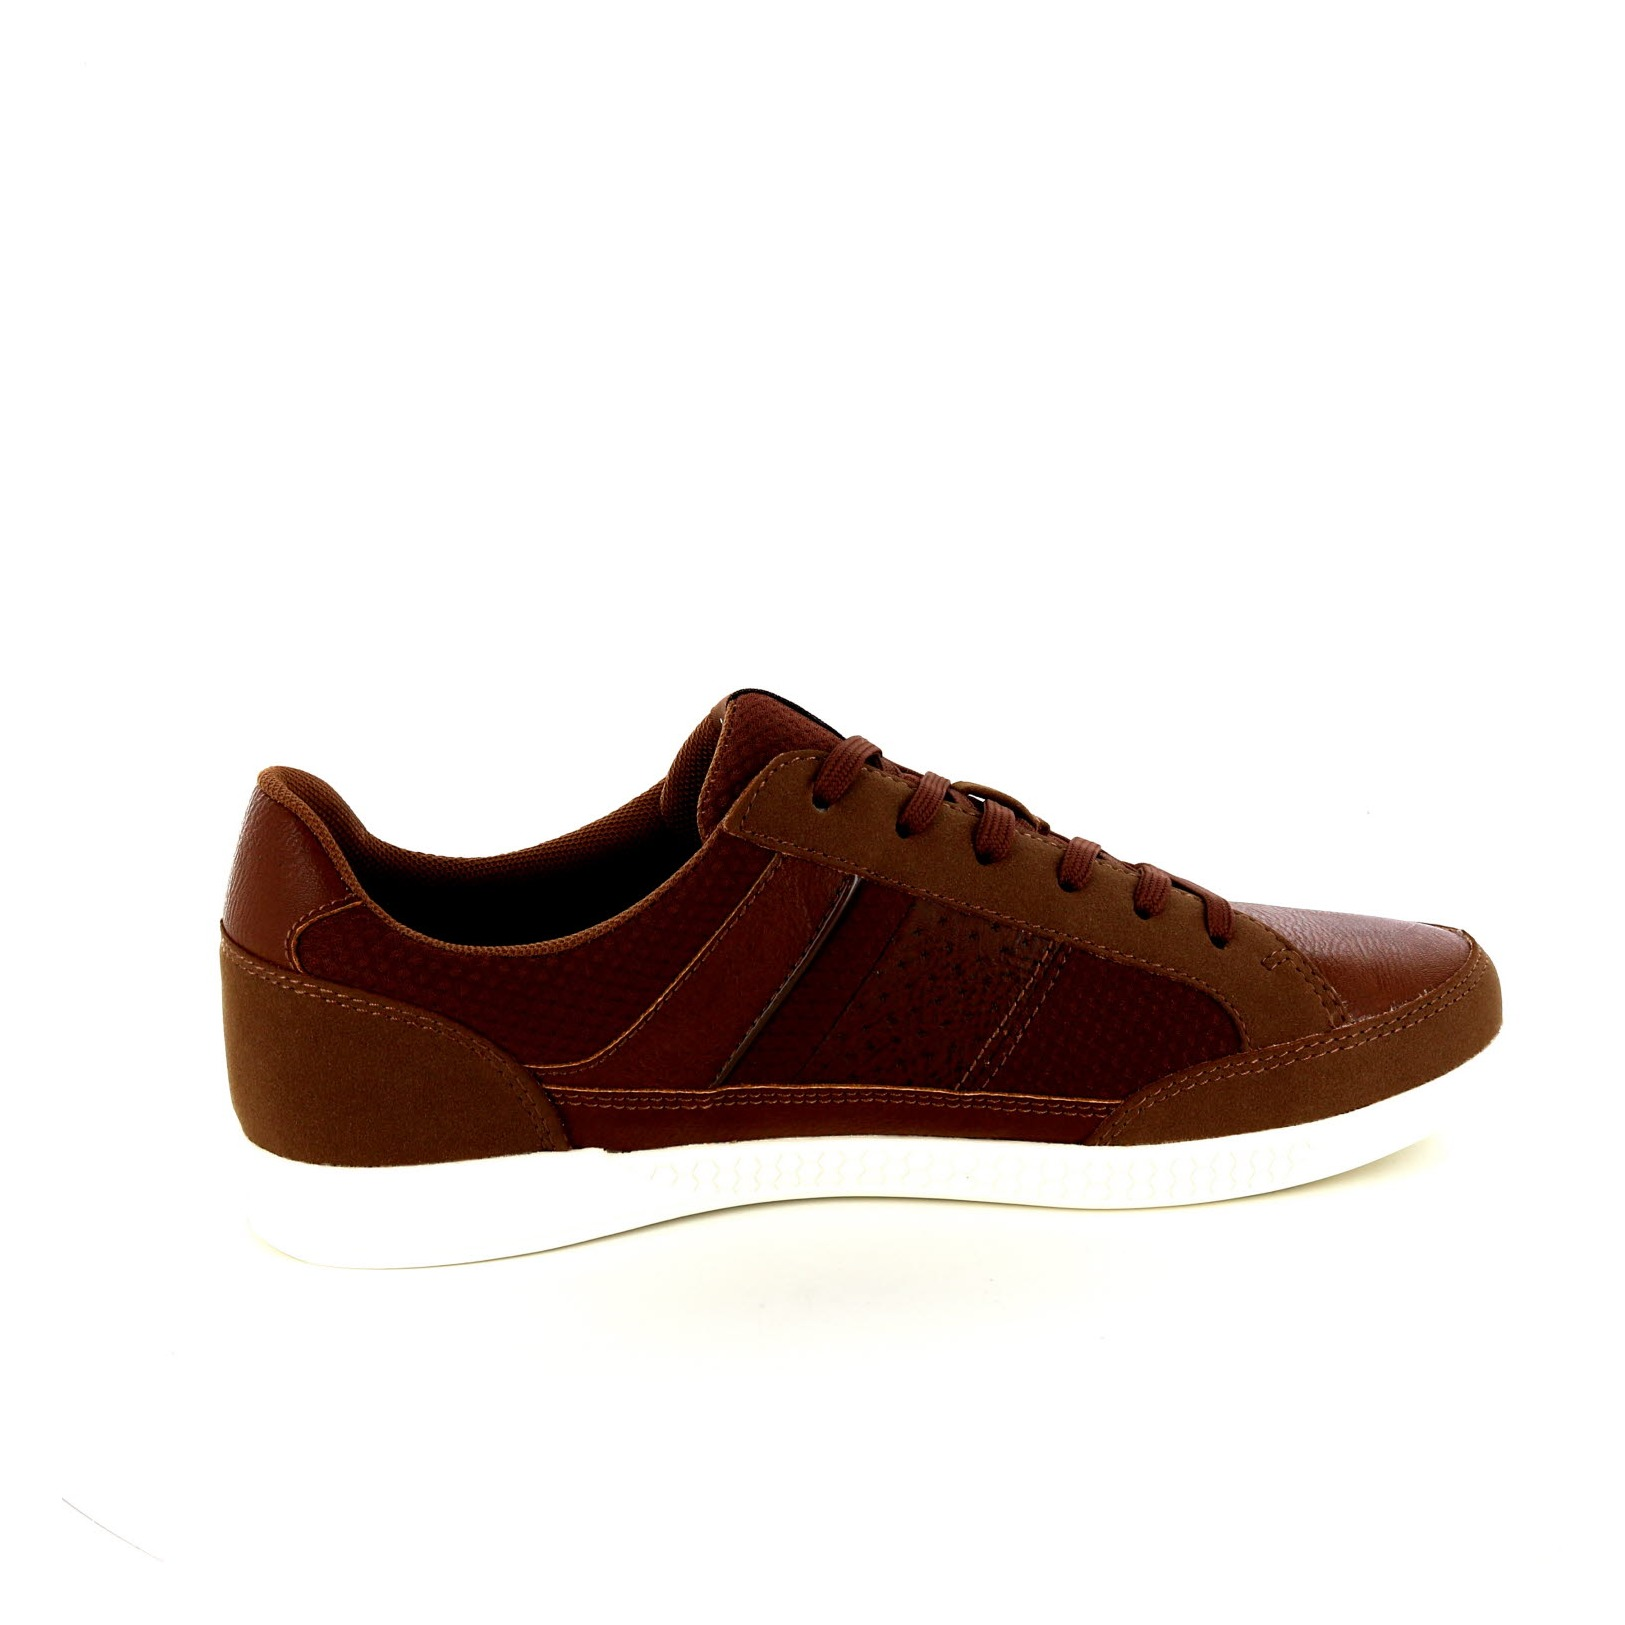 Jack & Jones / Blonder Sko - Joggesko, Cognac